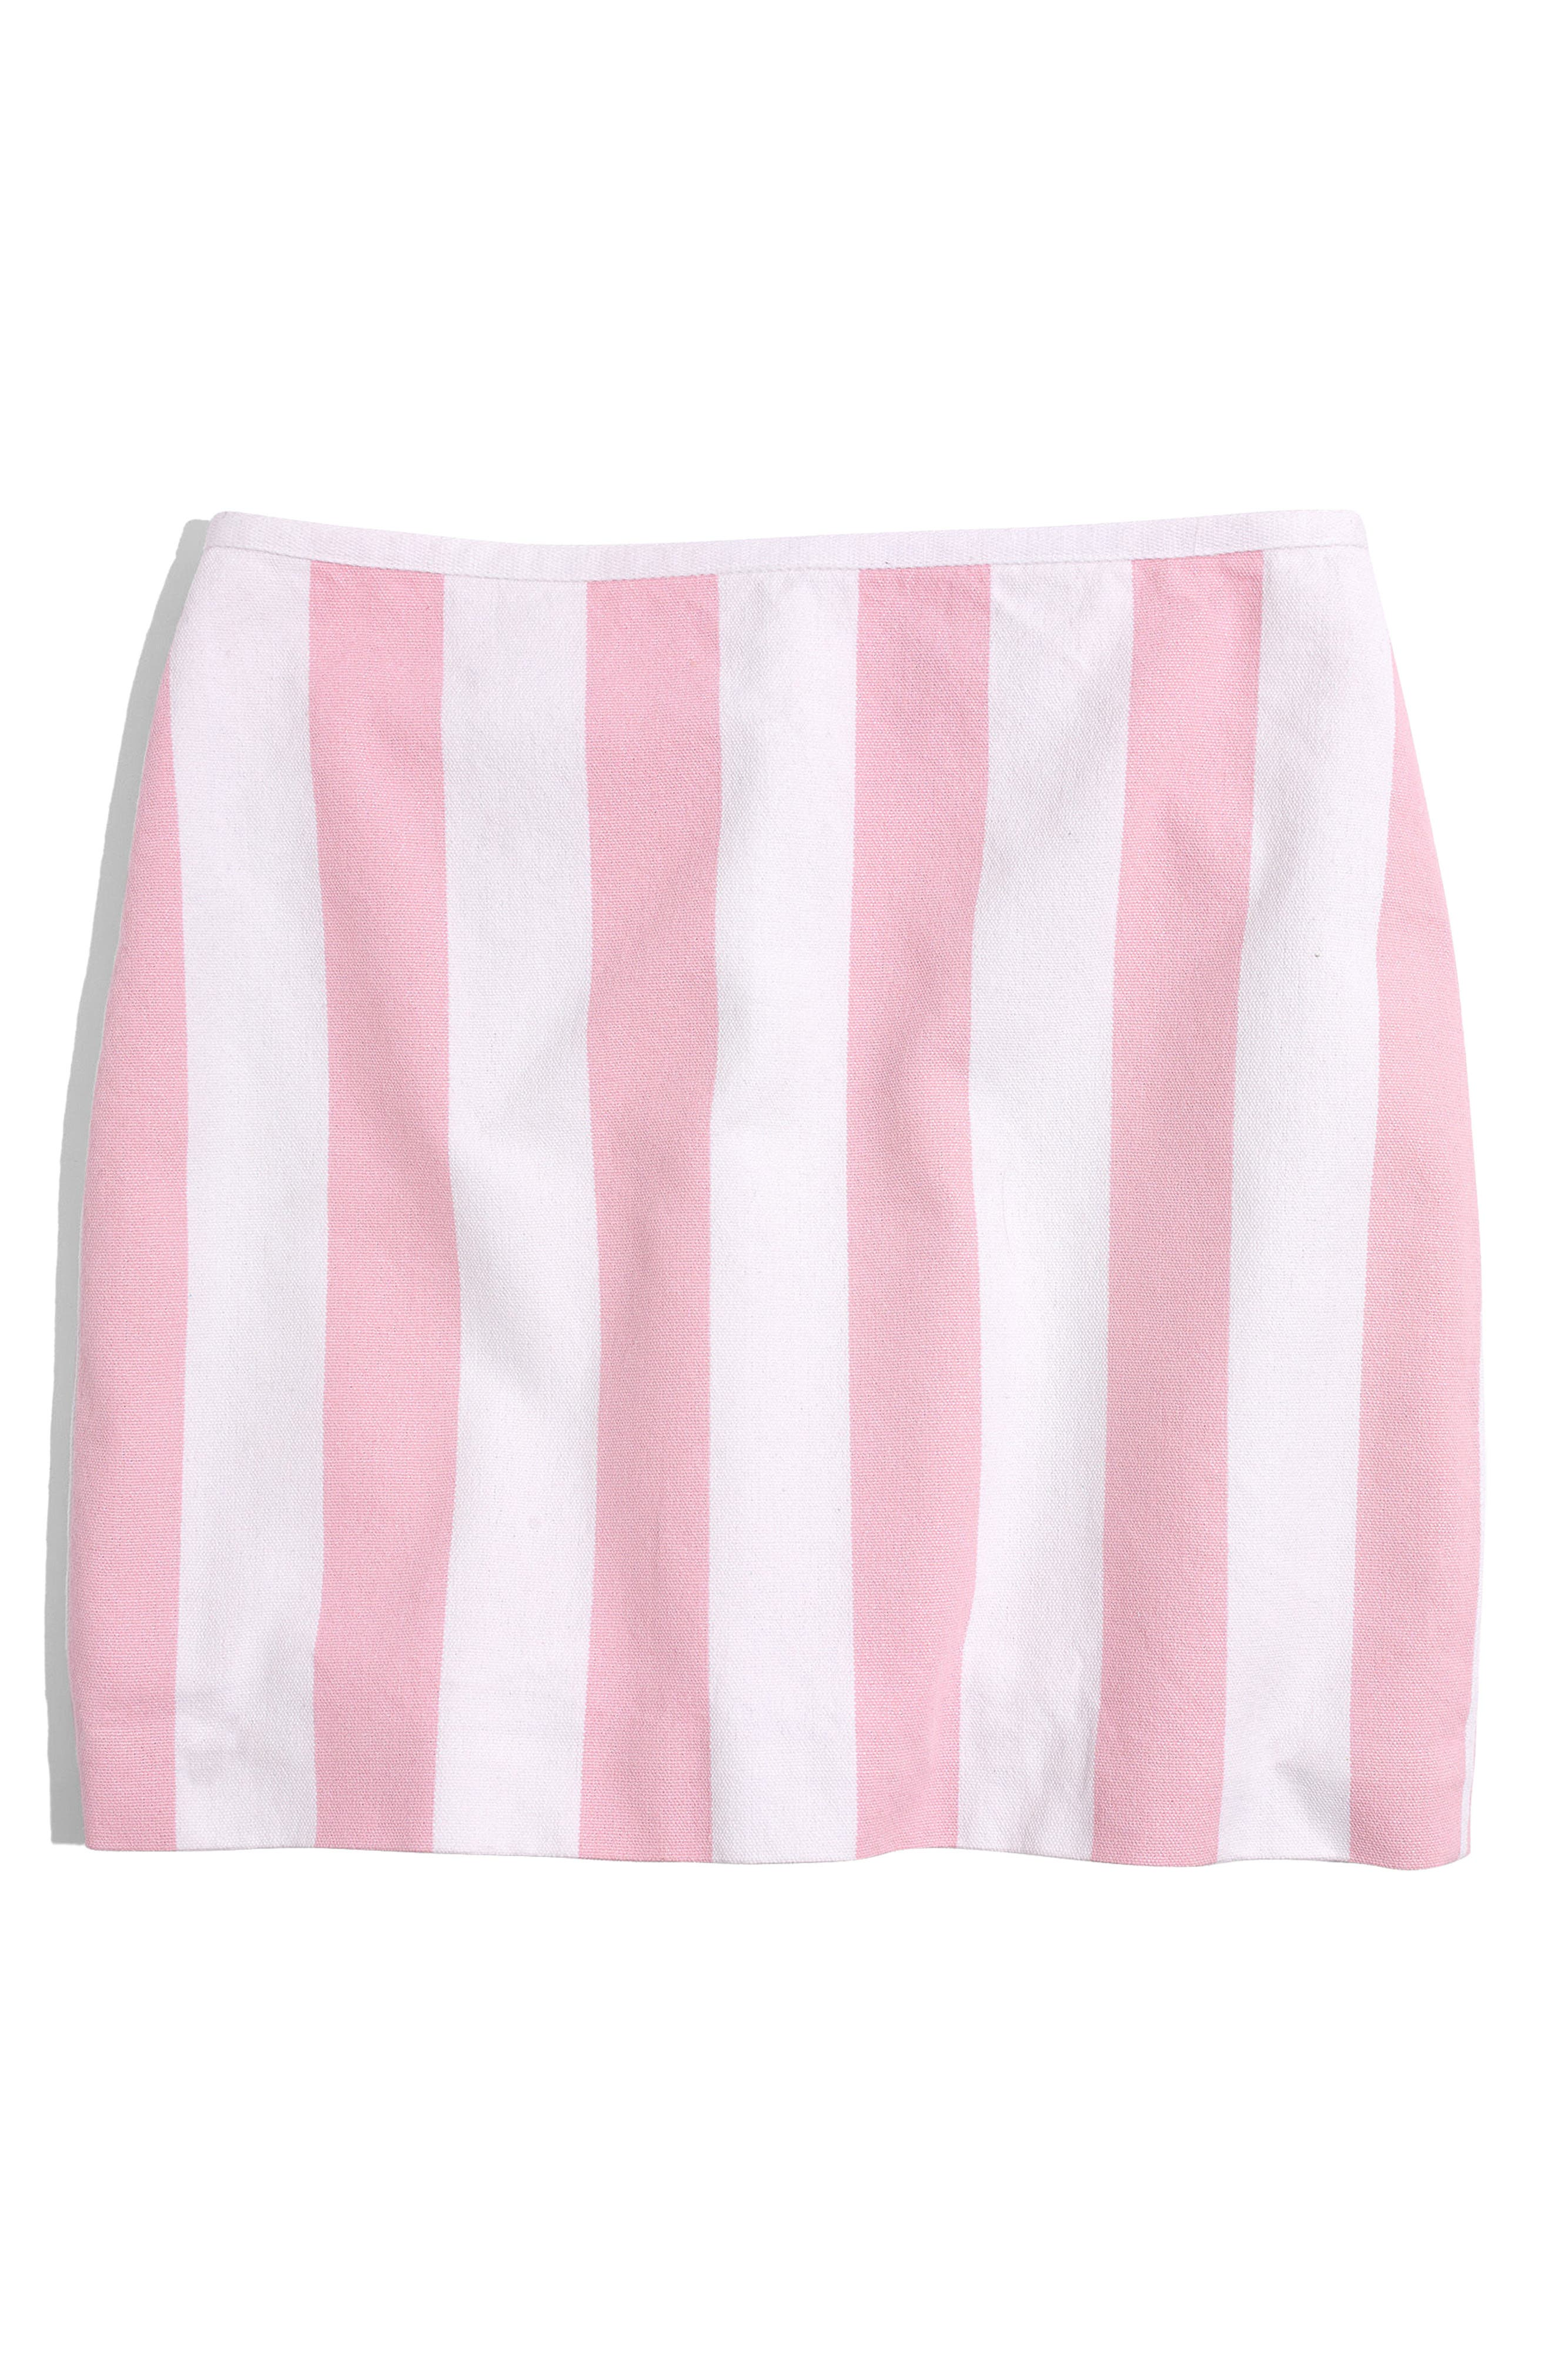 Gamine Stripe Miniskirt,                             Alternate thumbnail 3, color,                             650